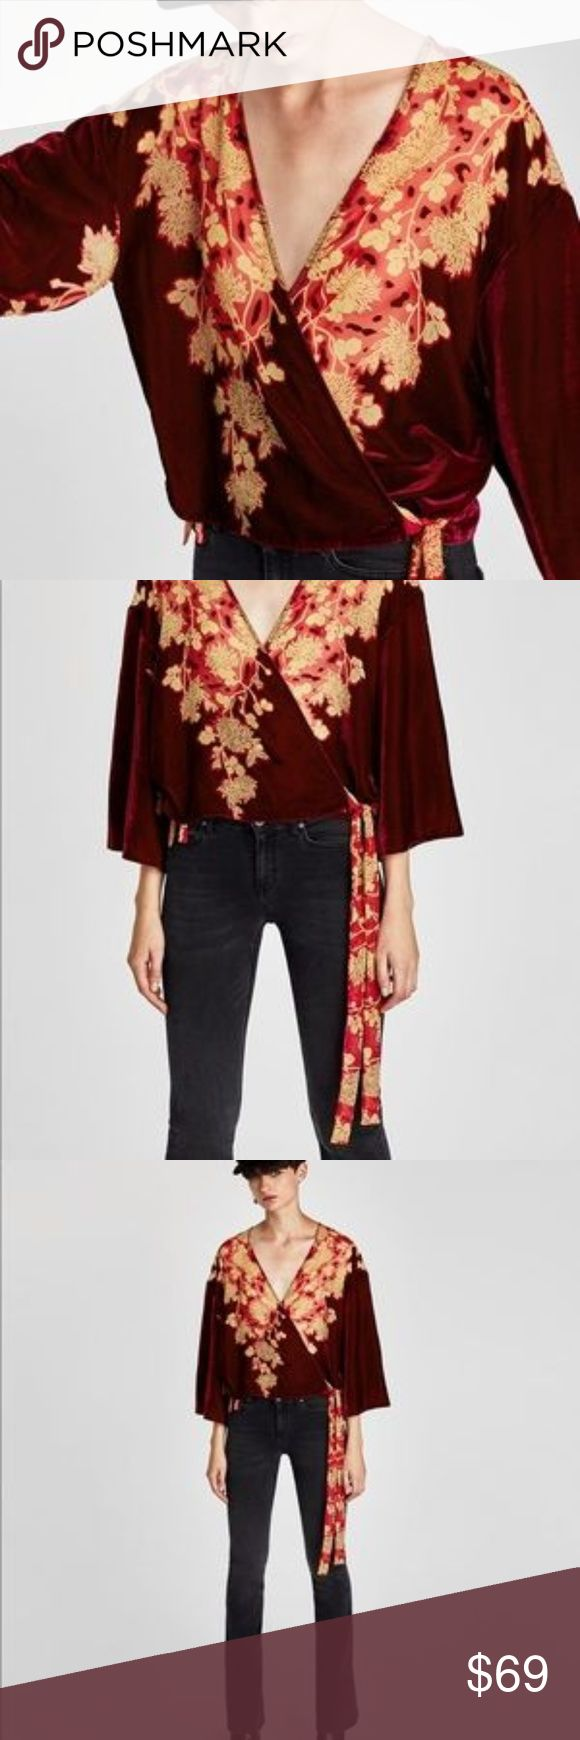 RVS Zara printed Kimono with velvet trims in wine Zara printed Kimono with velvet grins in deep burgundy wine color. Floral motif printed chiffon ties on the side. Wrap top Kimono that will work with denim or dress it up with a skirt for a night out.  Zara  Wrap Kimono  Velvet  Color Red/ burgundy/ wine Zara Tops Blouses